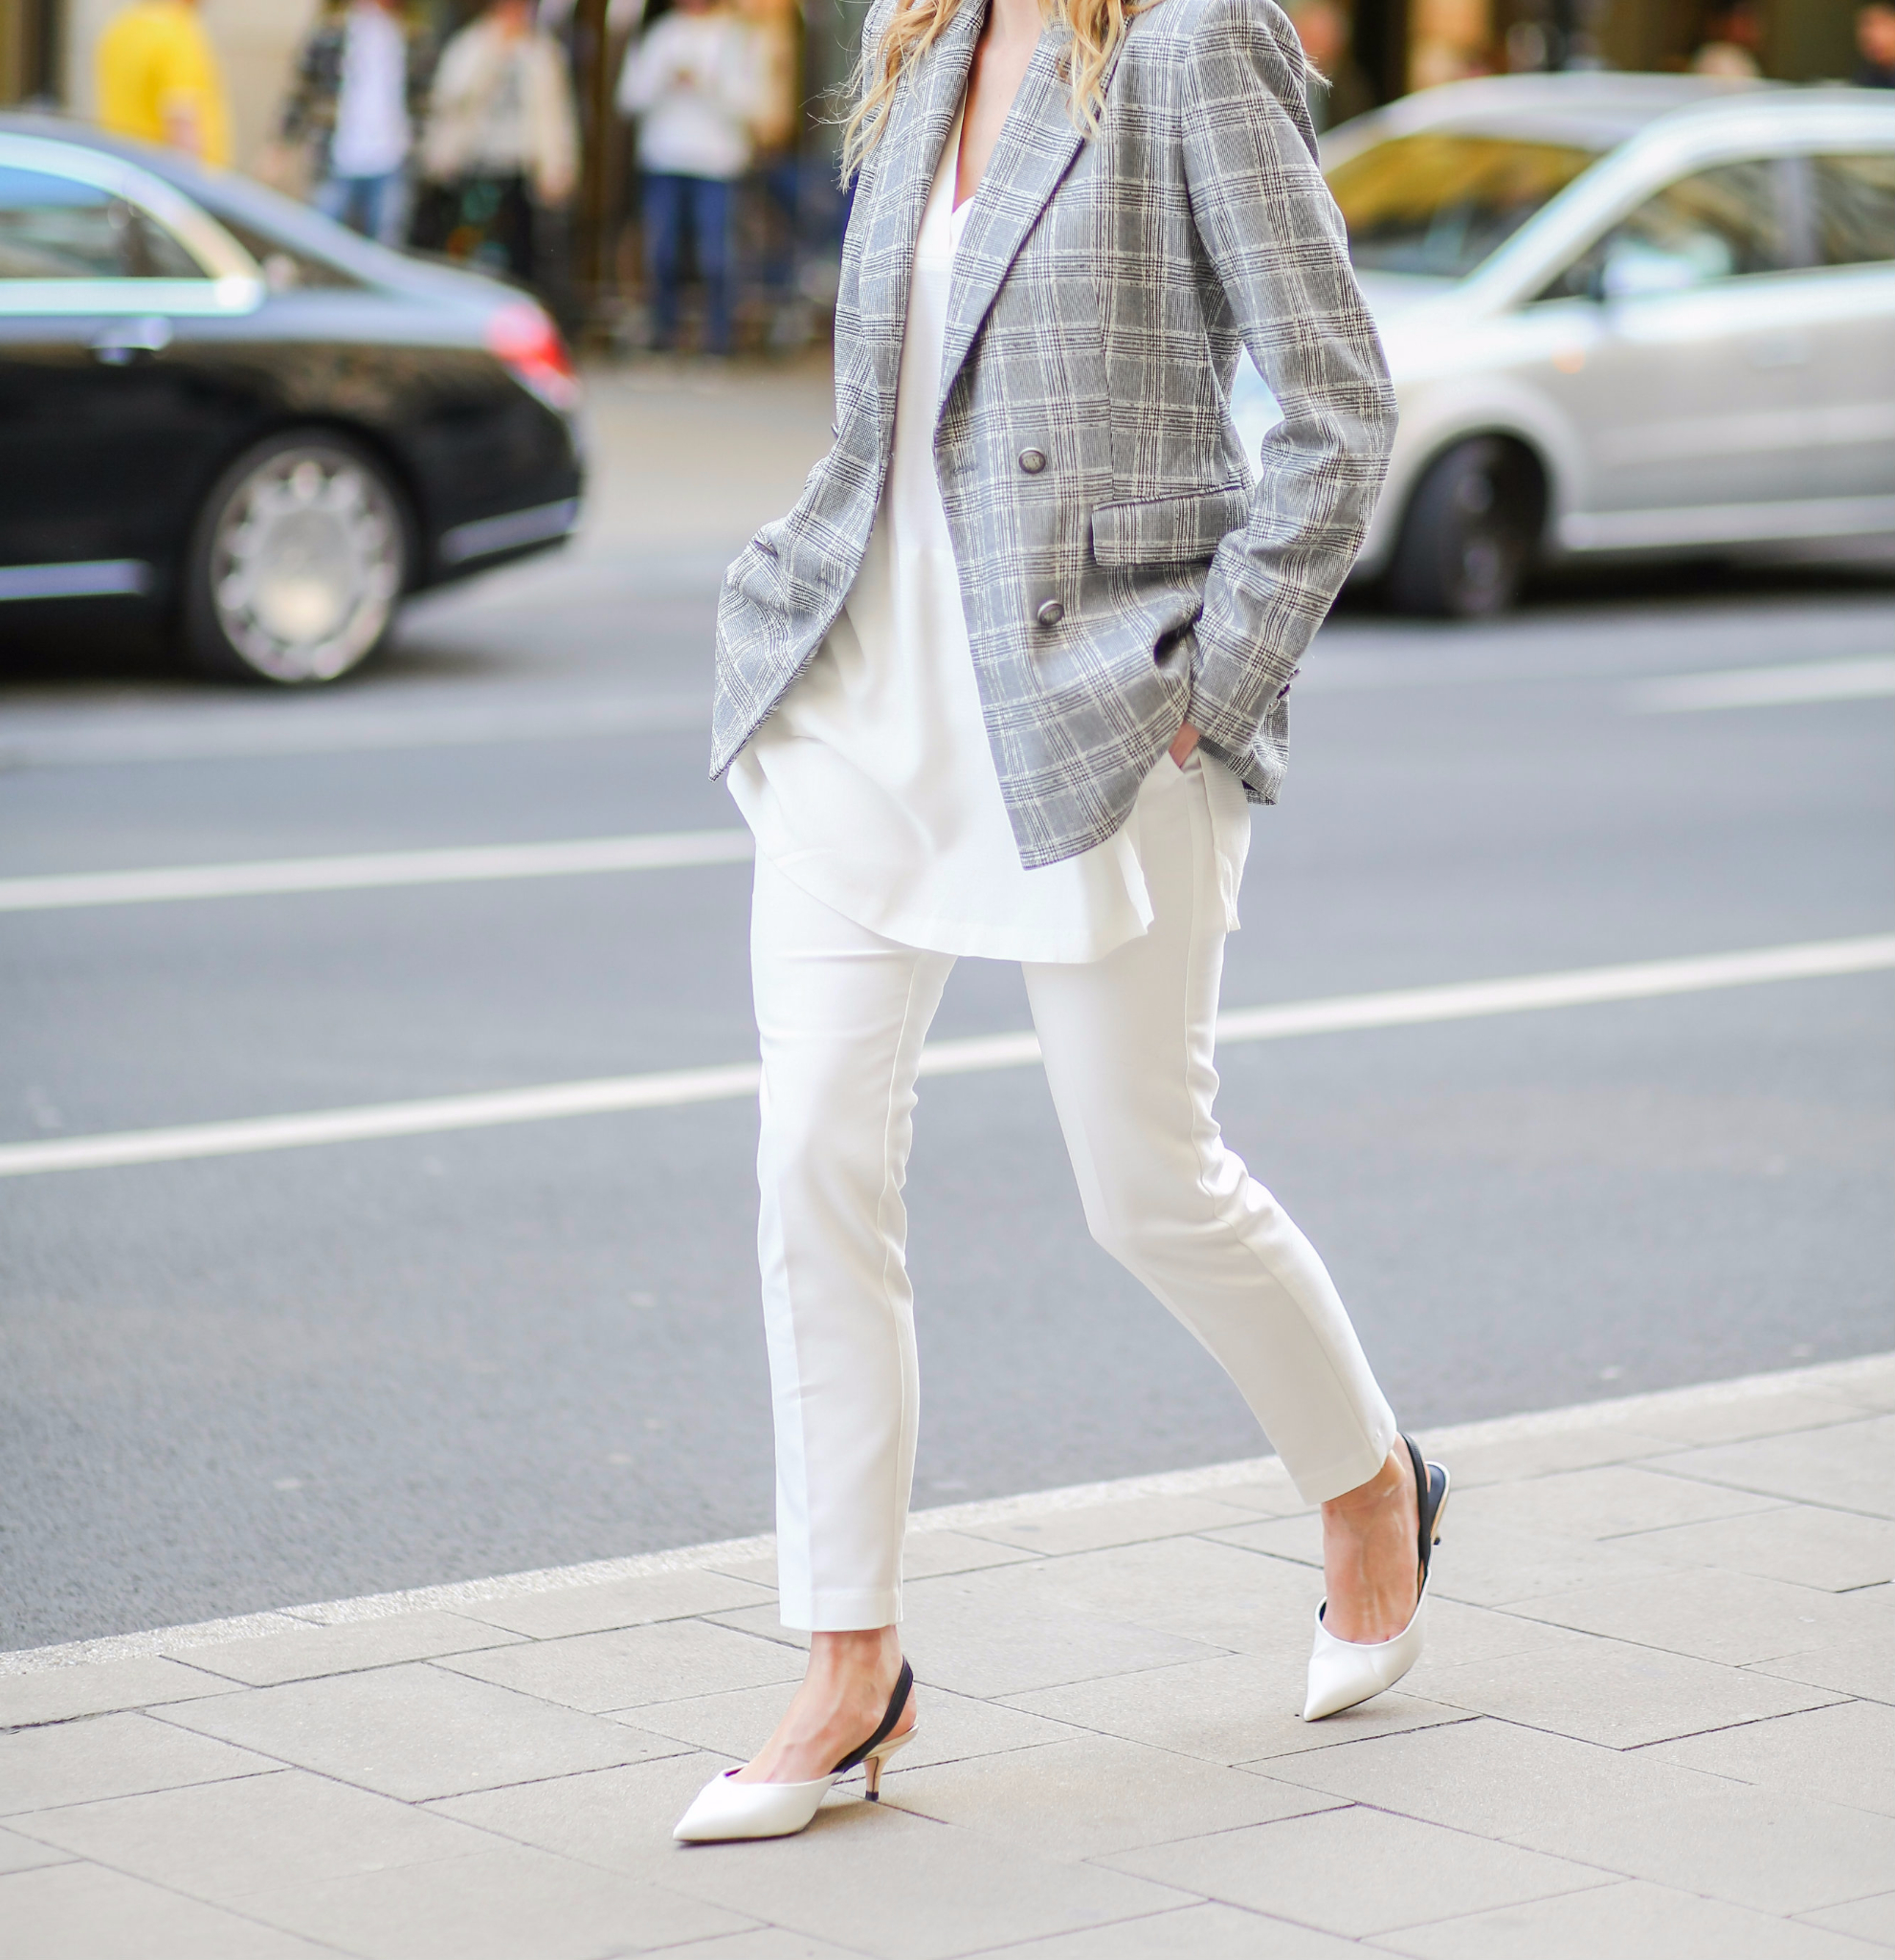 MOD-by-Monique-Fashion-Looks-White-and-checked-4-1